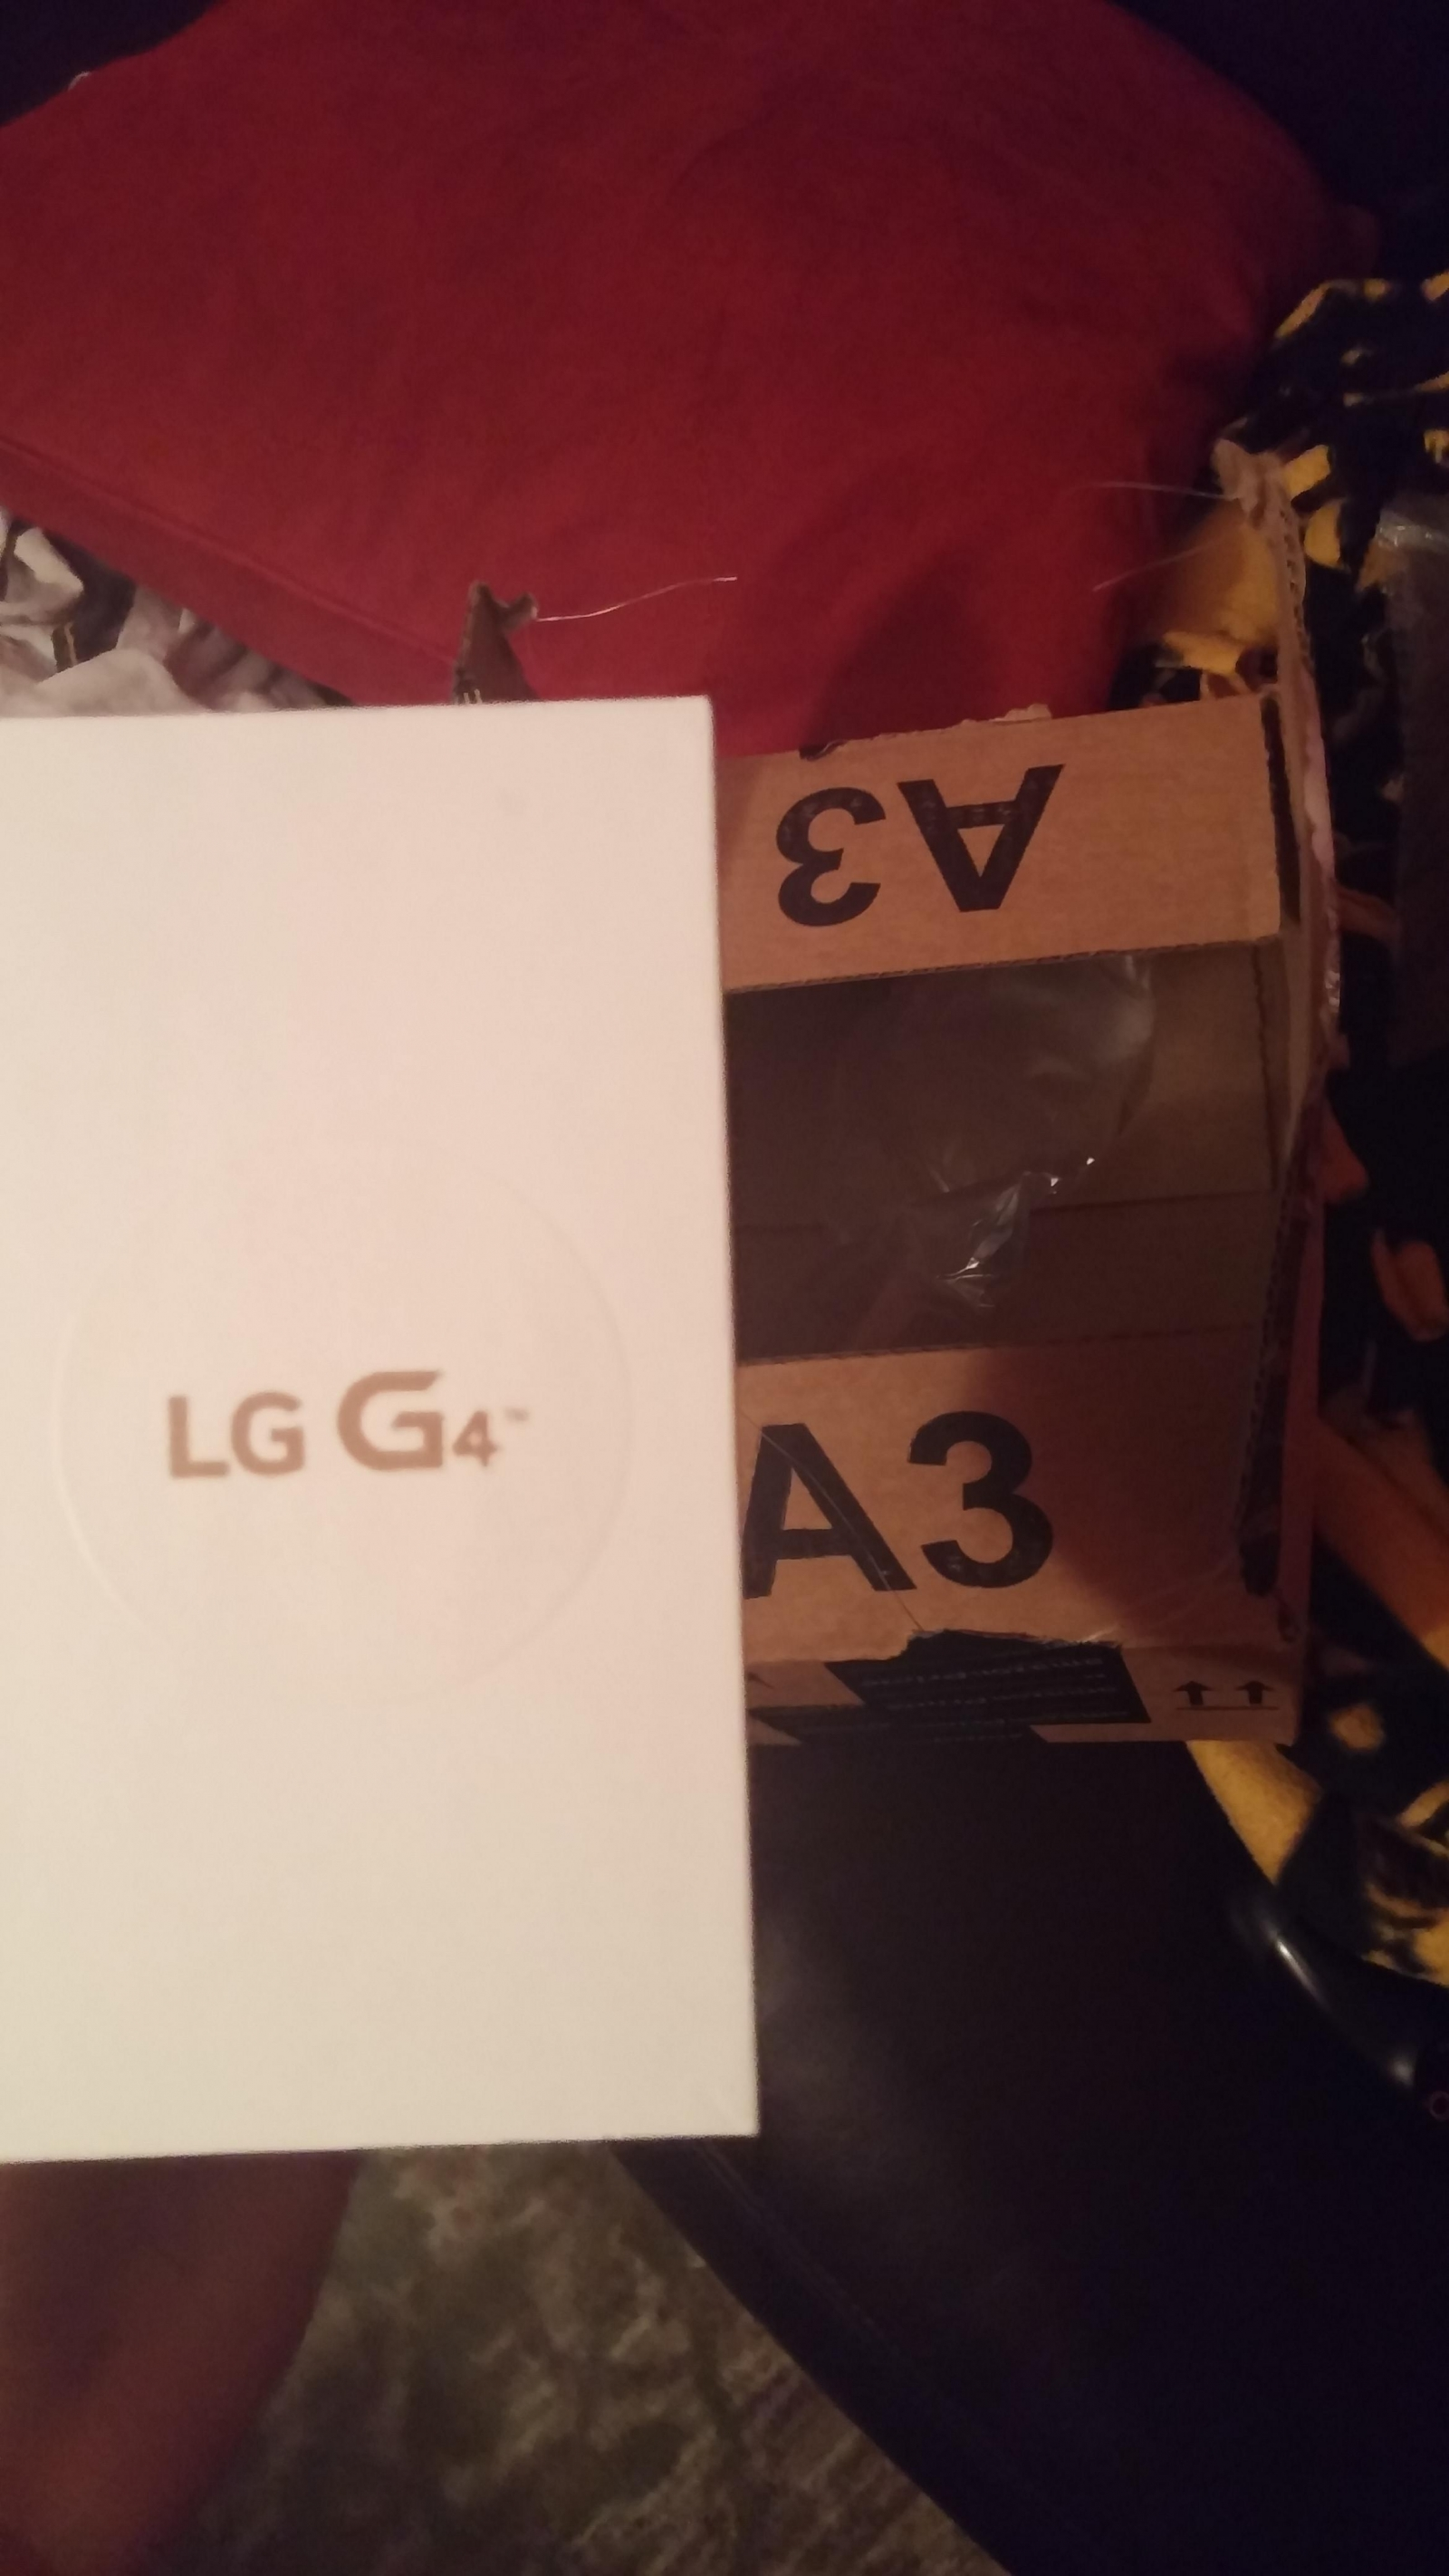 User the-end receives LG G4 from Amazon